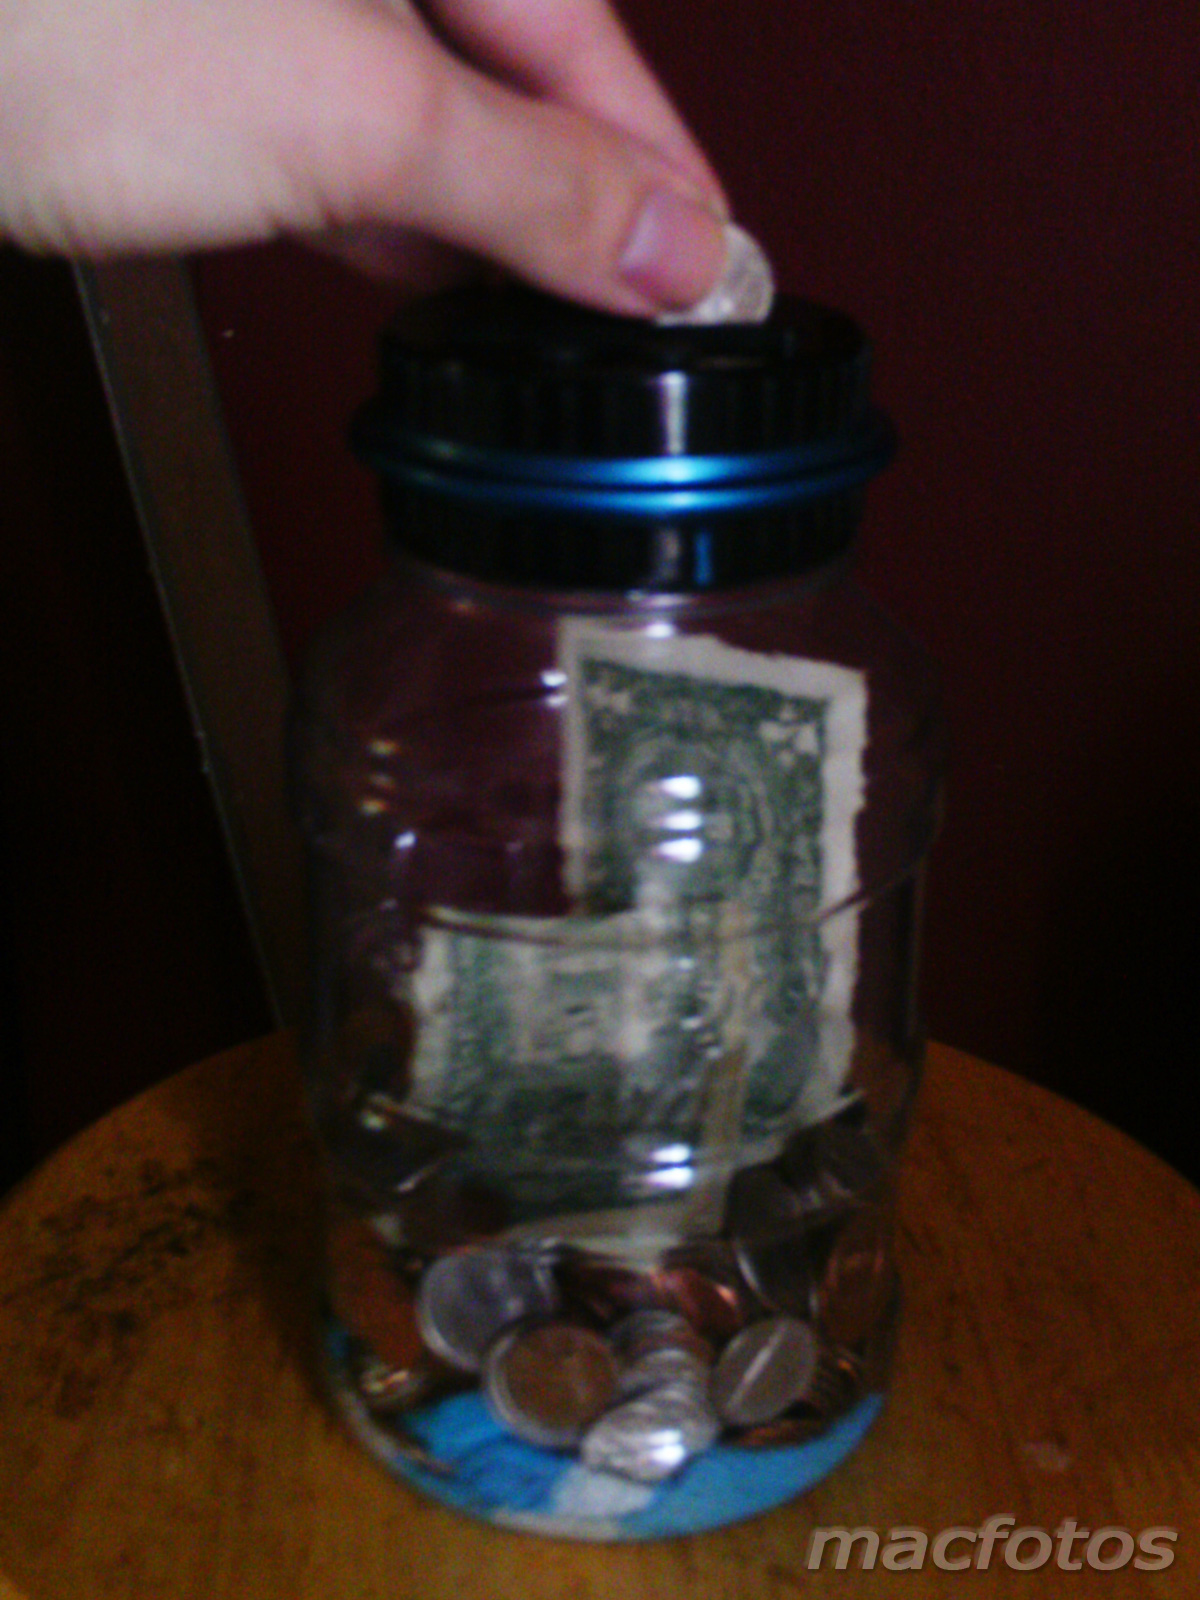 Saving Up